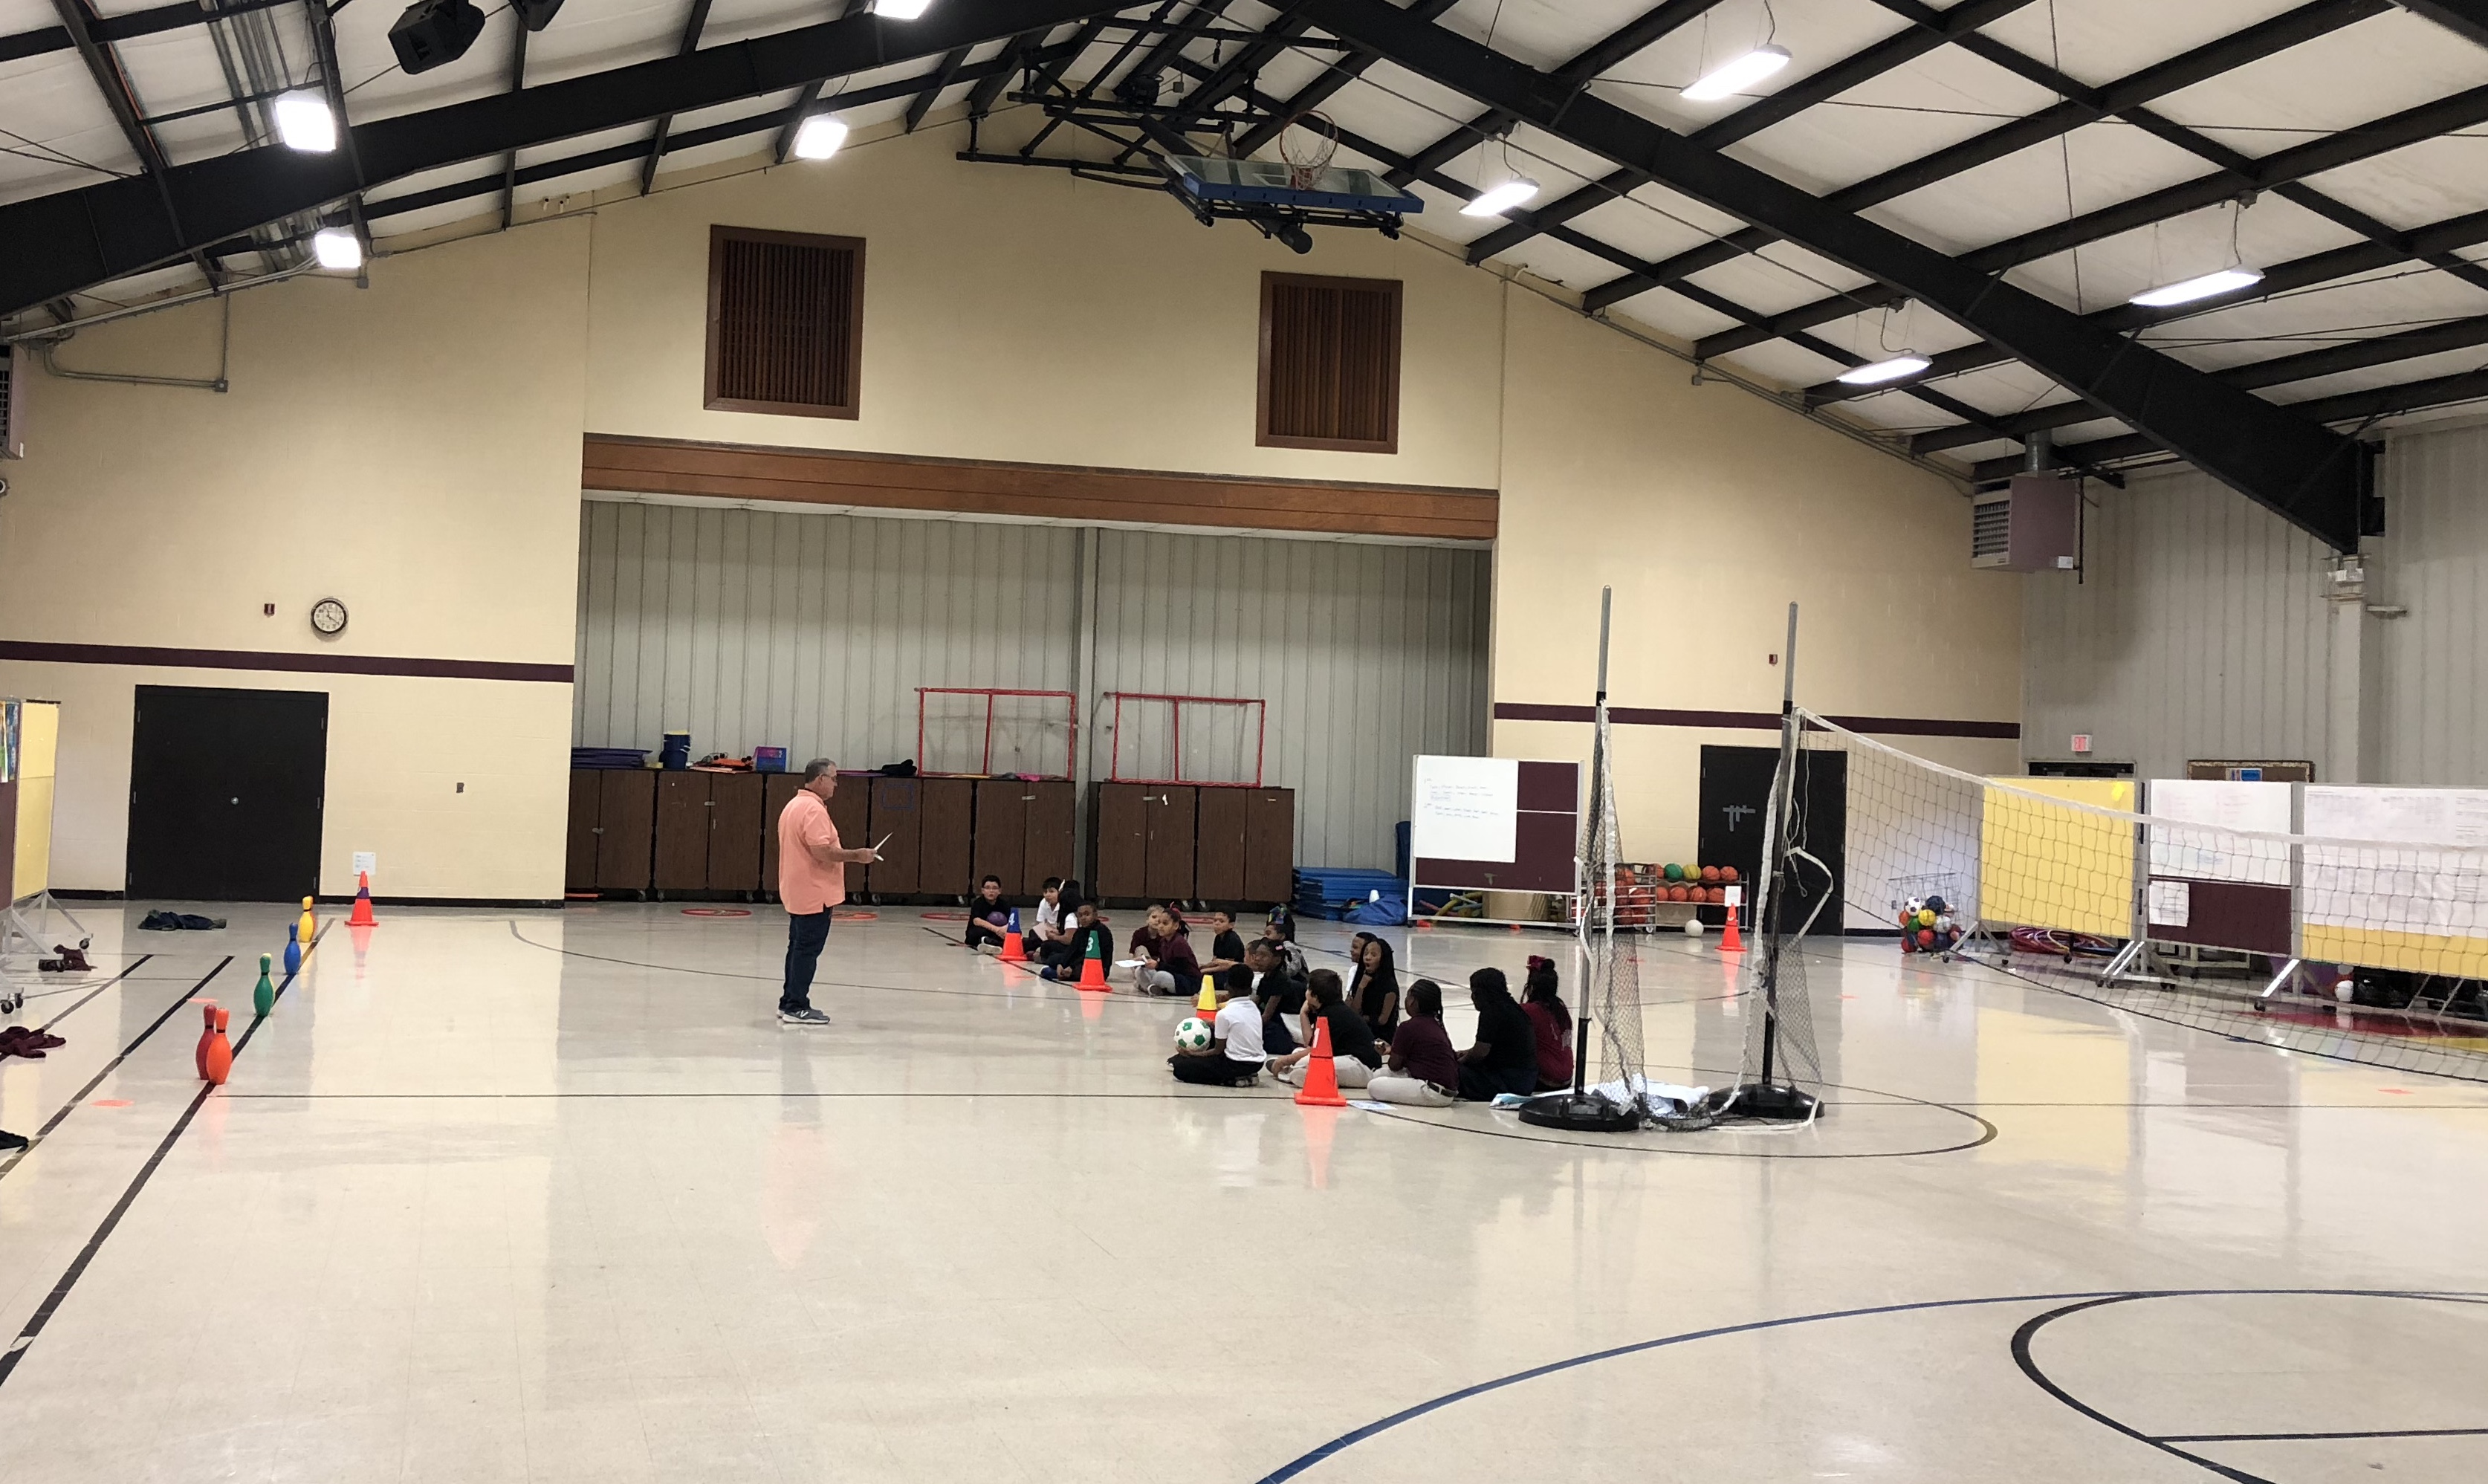 Gym class at Andrew Jackson Elementary